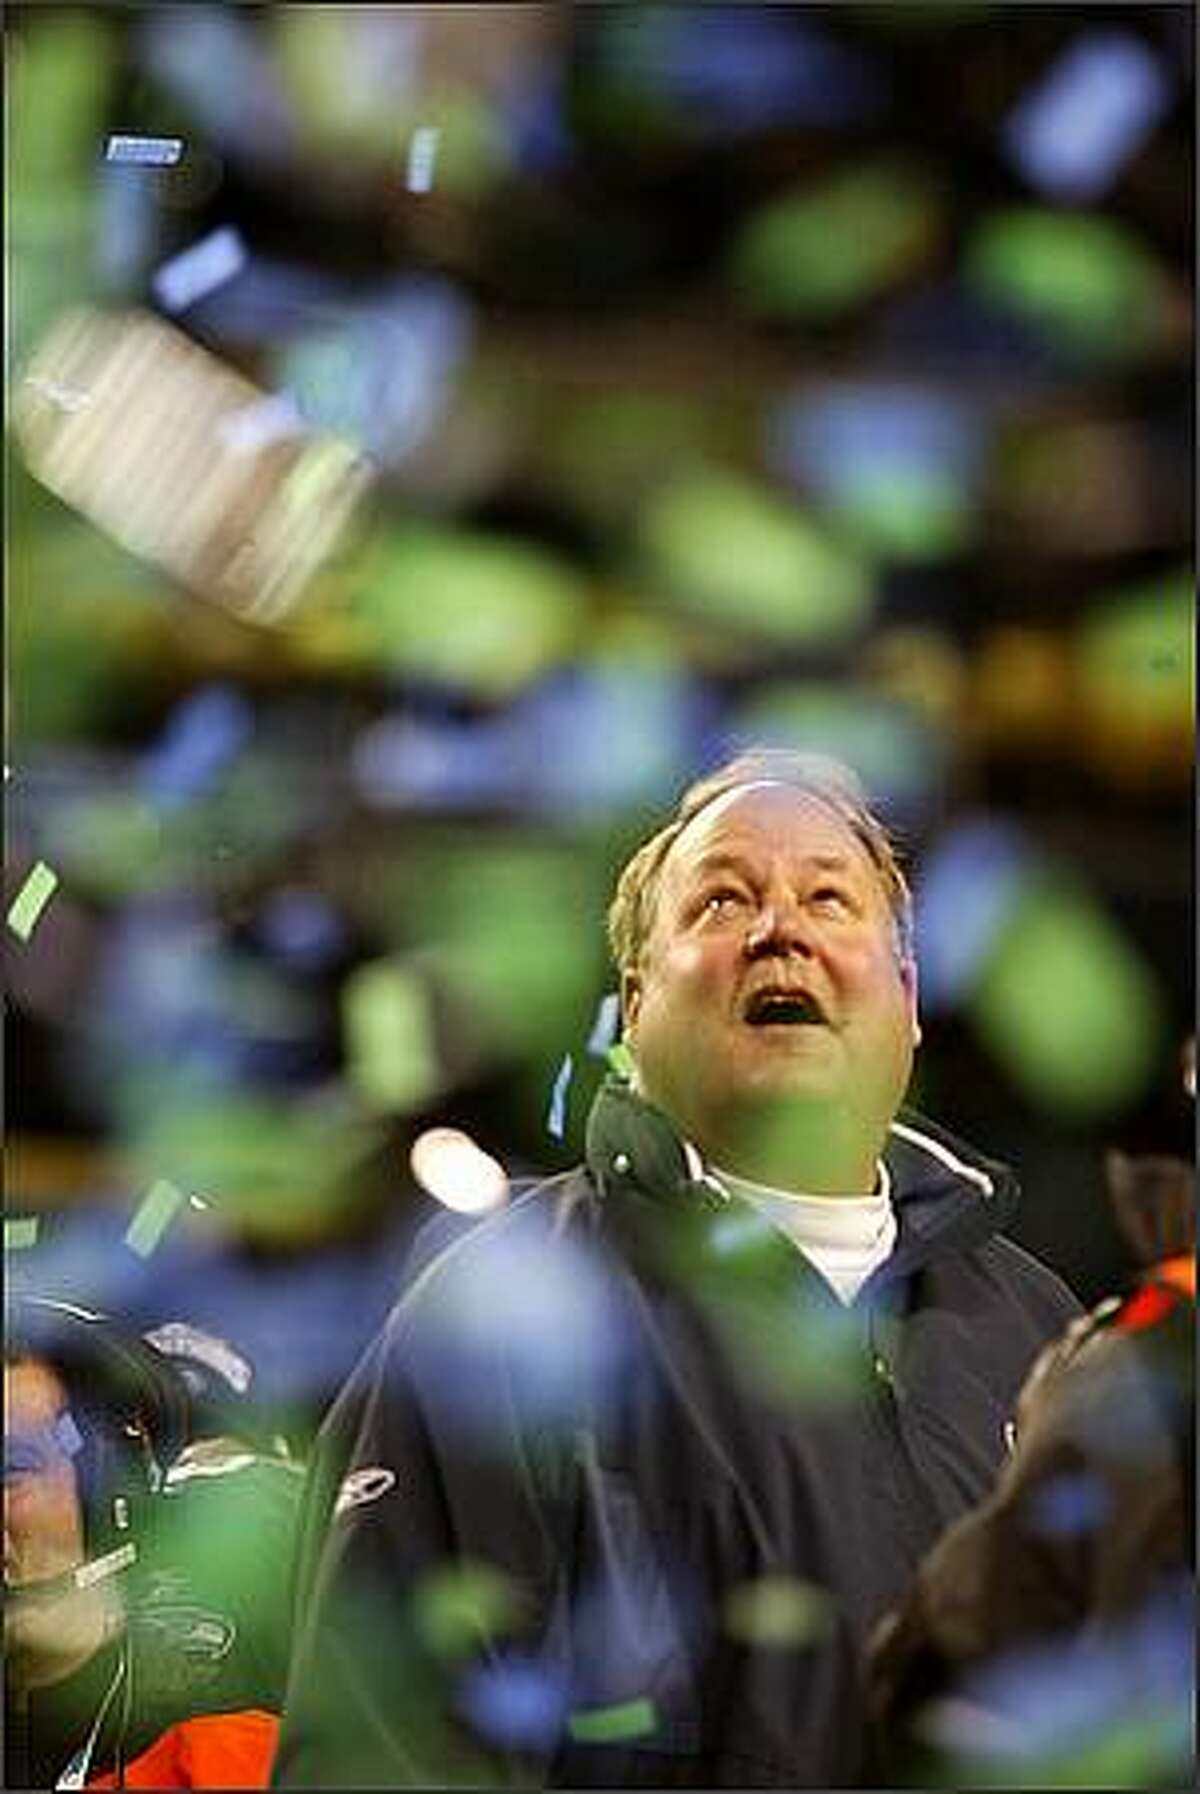 Coach Mike Holmgren watches as confetti falls during the trophy ceremony following the NFC Championship game won by the Seattle Seahawks over the Carolina Panthers at Qwest Field Sunday, Jan. 22, 2006. P-I Photo/Scott Eklund